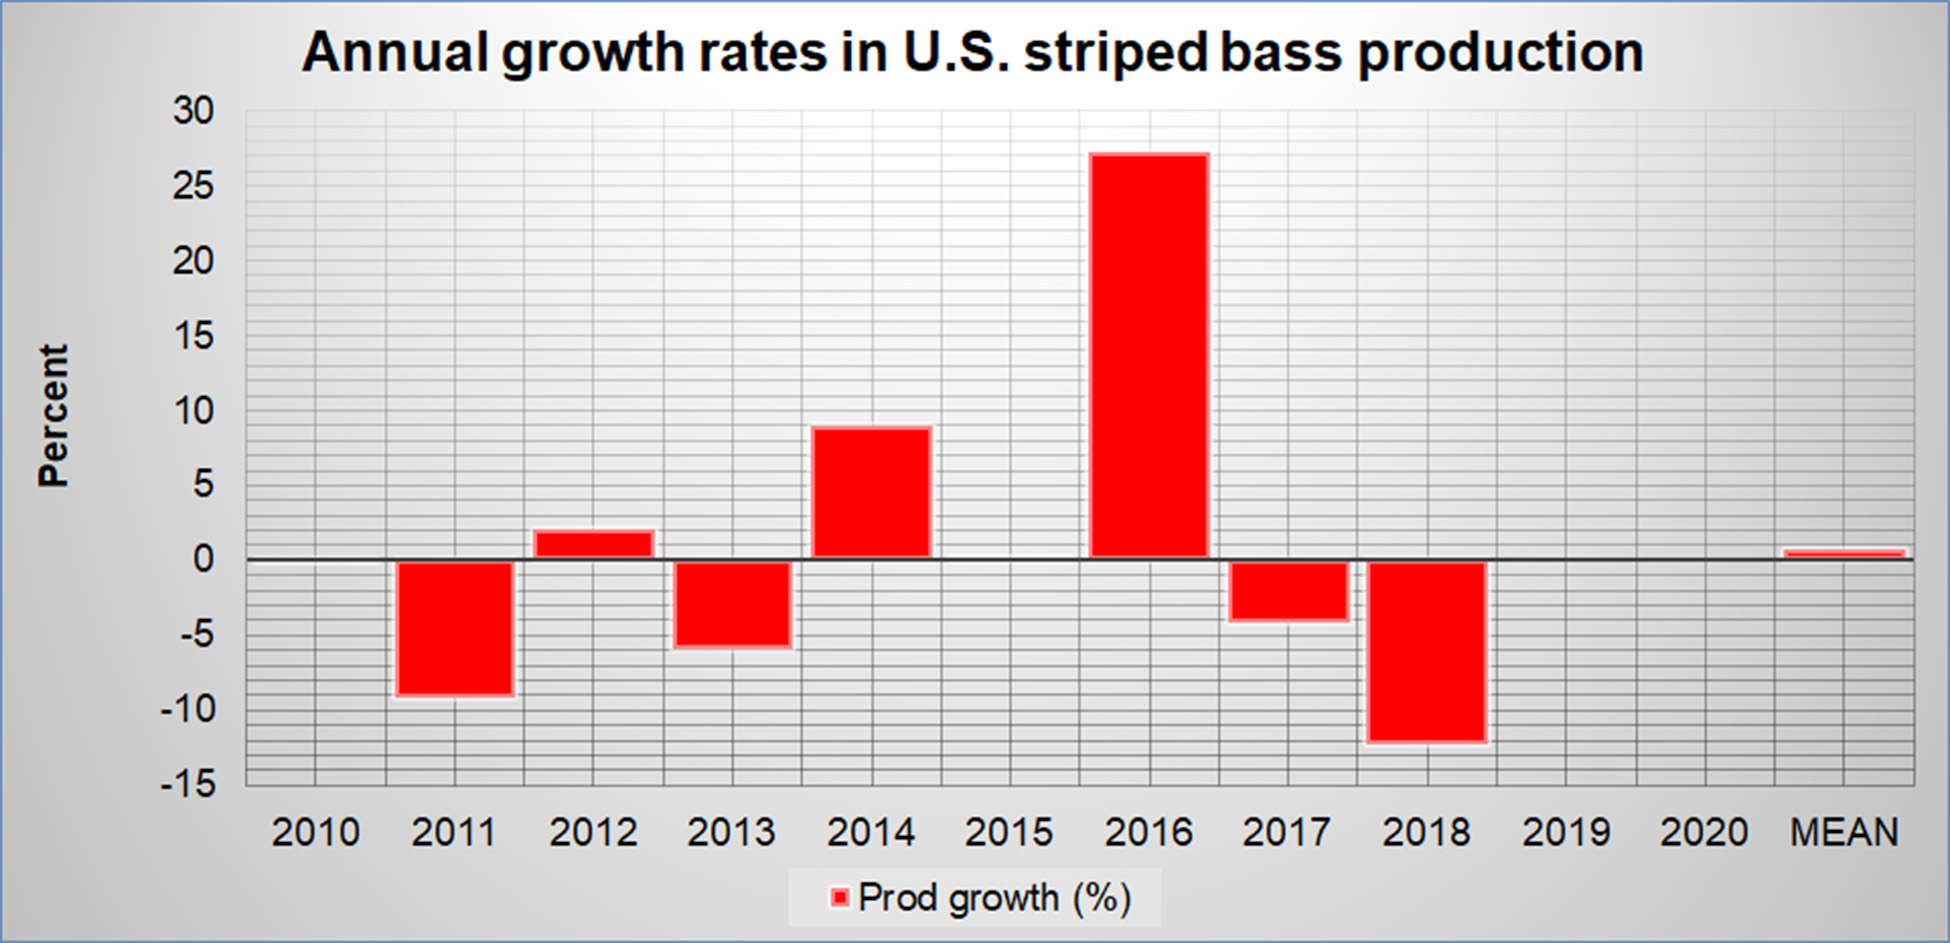 Annual Growth in U.S Striped Bass Aquaculture Production